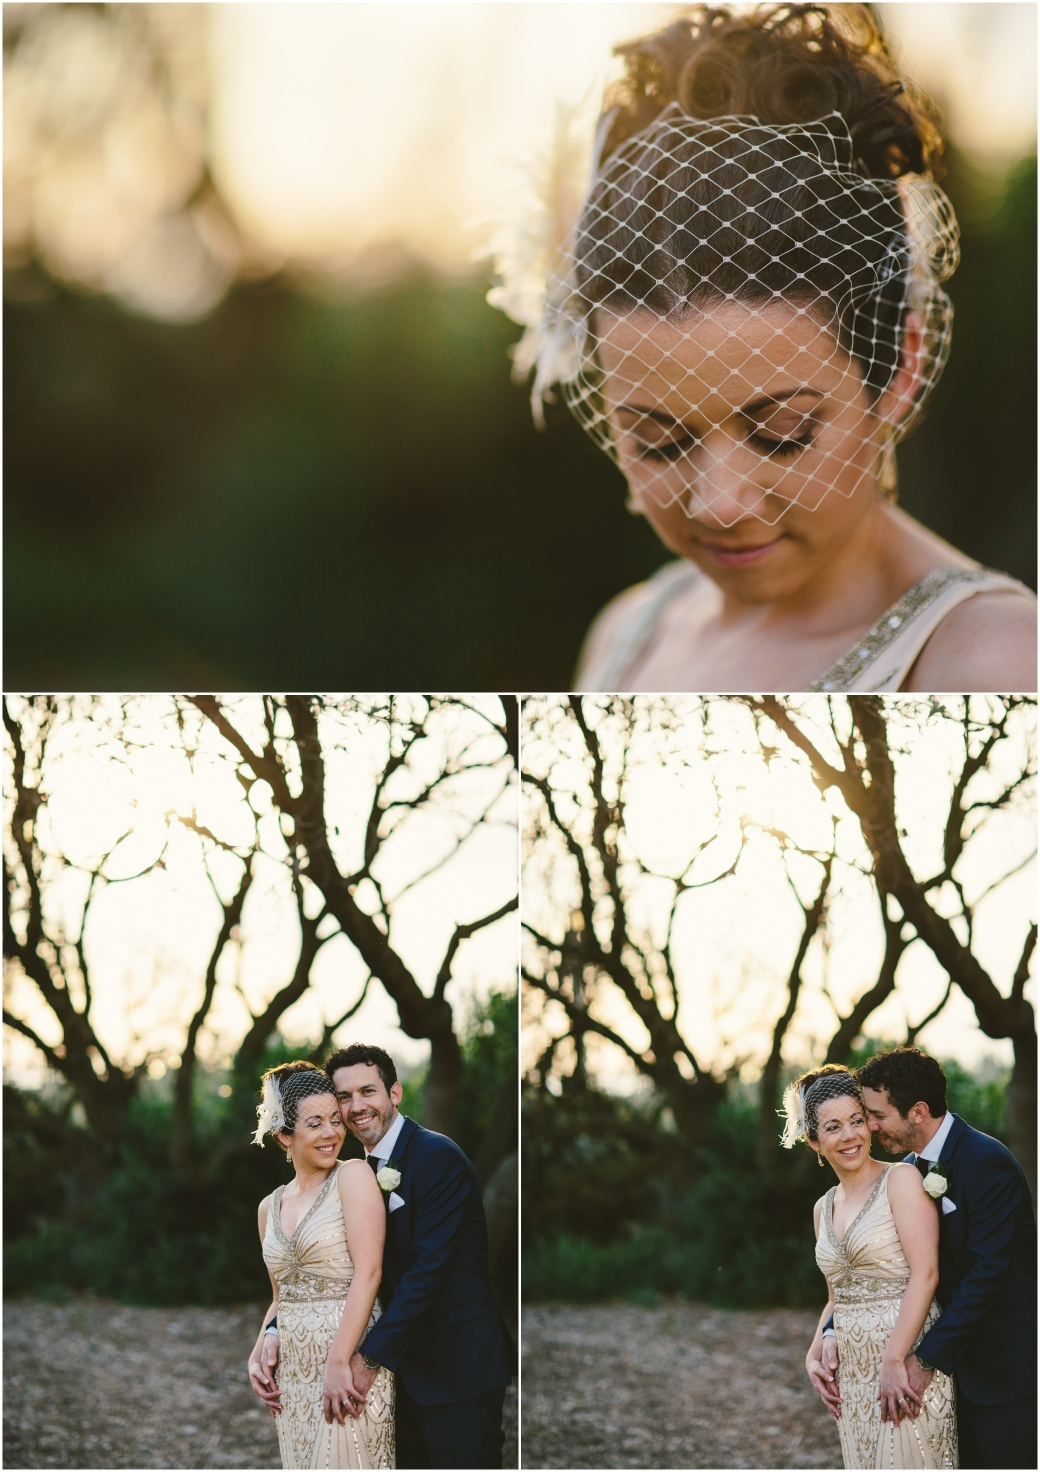 melbourne wedding photographer windows on the bay mordicallic first look Braeside park wedding day portraits25